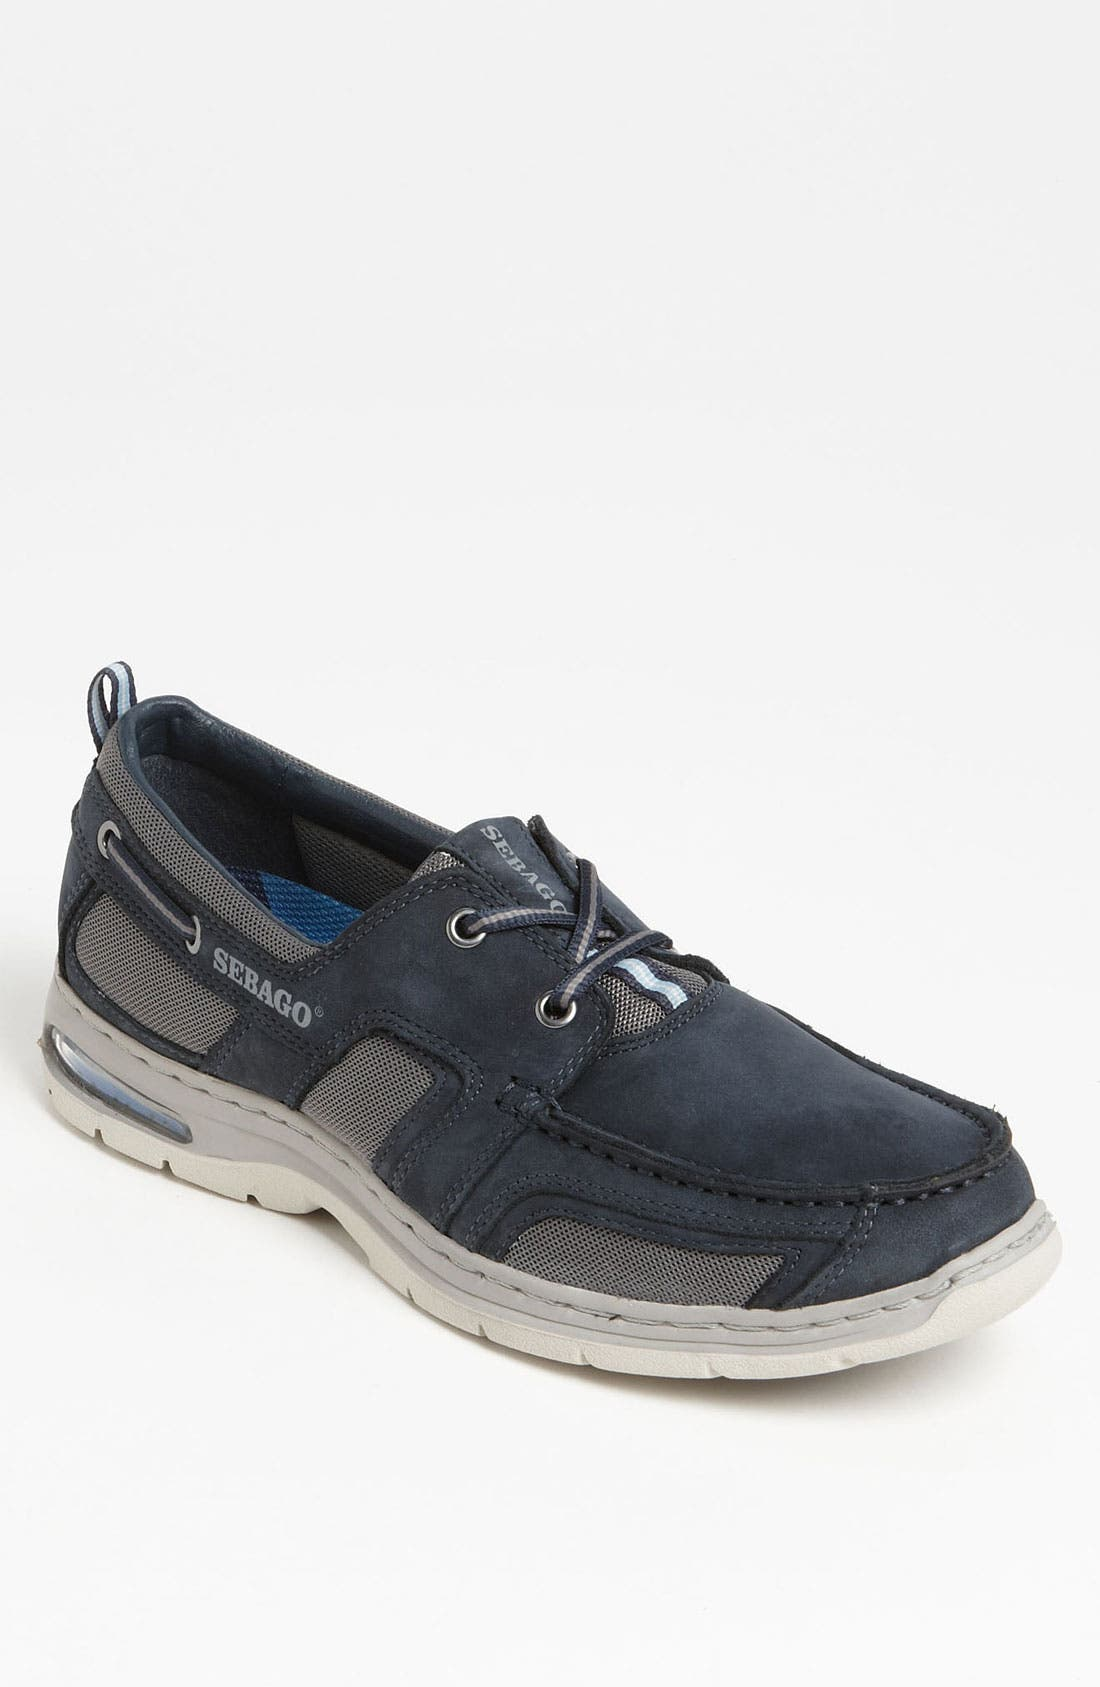 Alternate Image 1 Selected - Sebago 'Offshore Catch' Boat Shoe